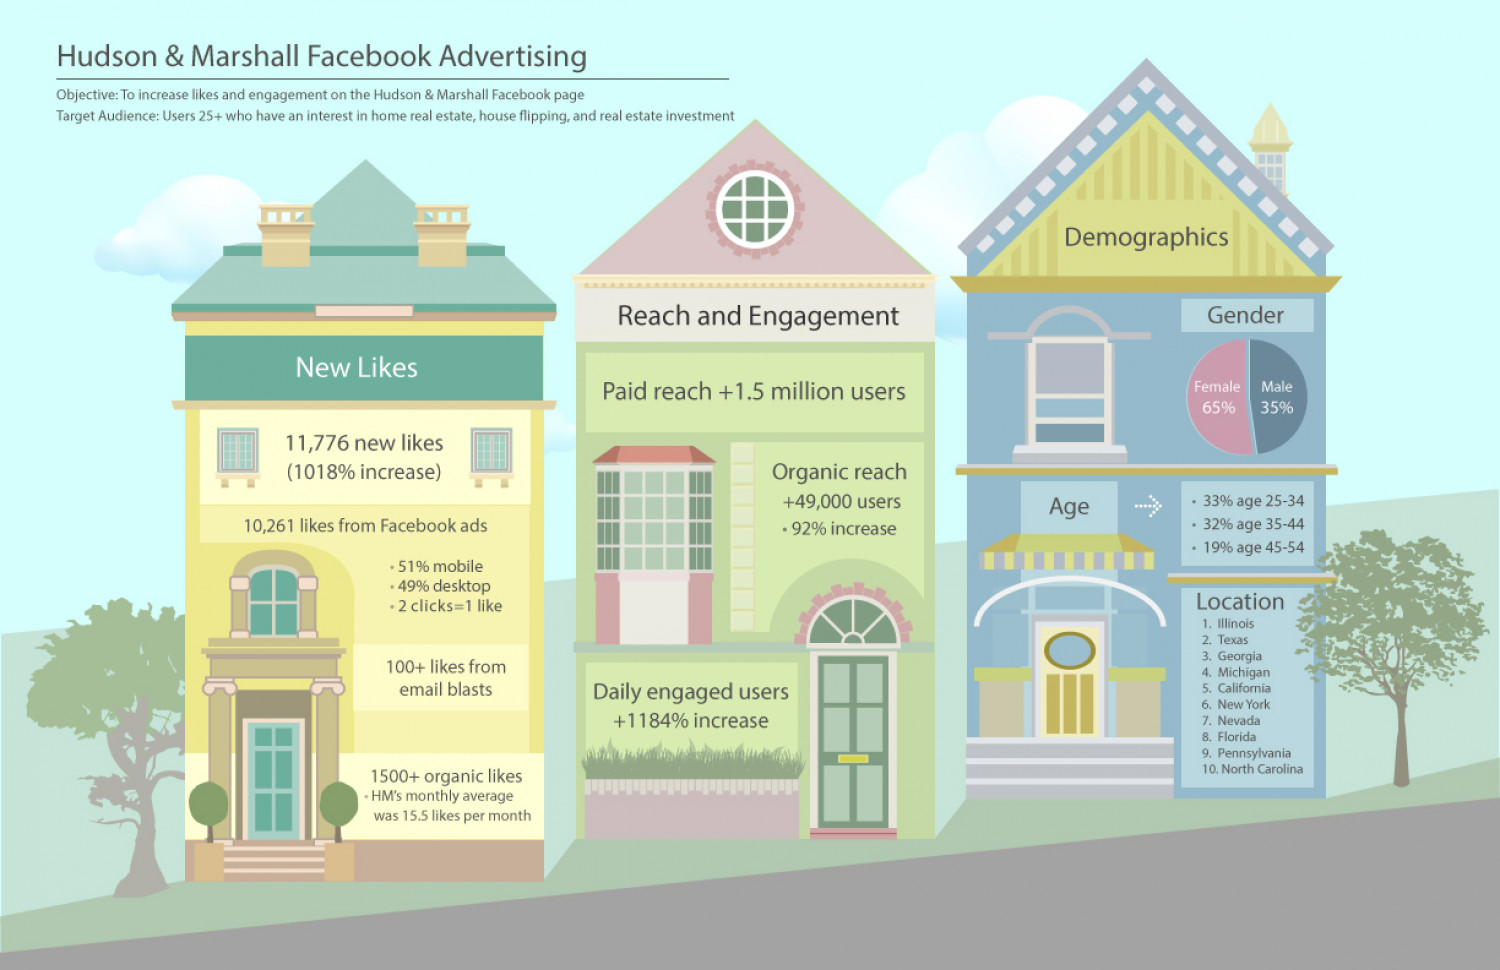 Hudson & Marshall Facebook Advertising Infographic